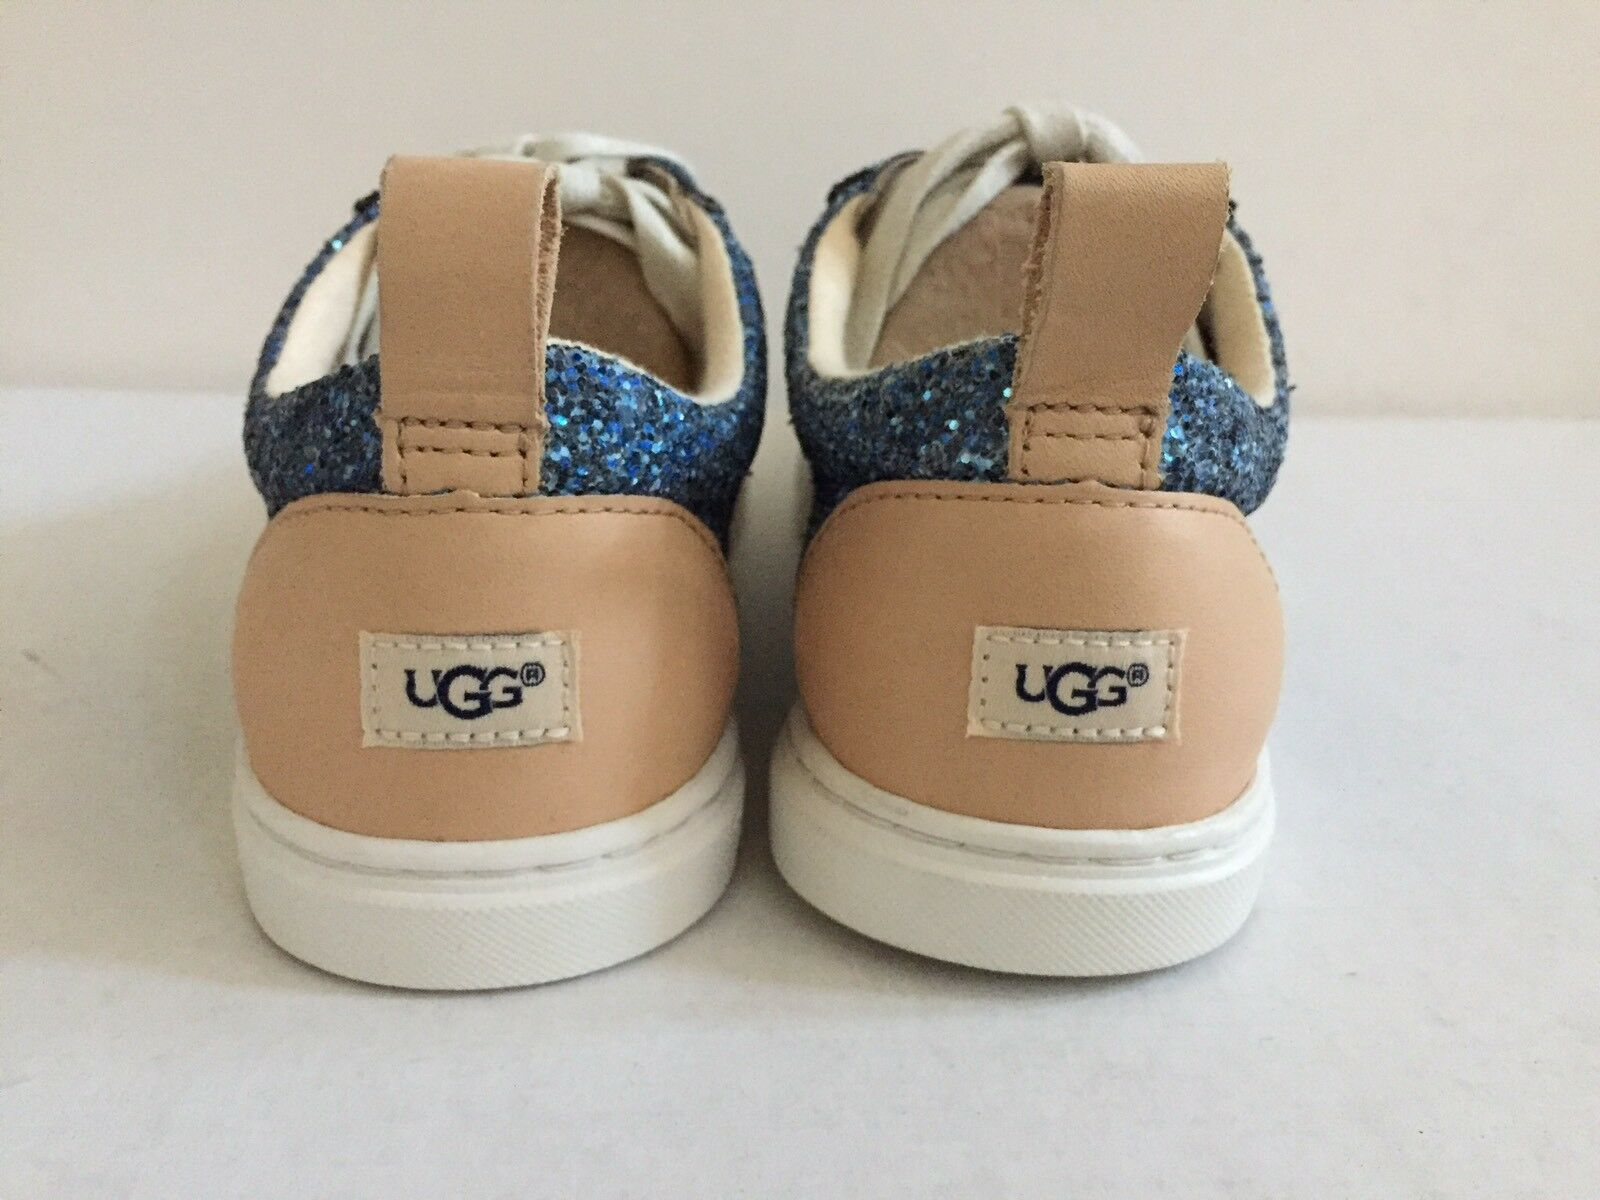 UGG KARINE CHUNKY GLITTER BLUE MULTI LACE UP SNEAKERS US 7 / EU 38 / UK 5.5 NIB image 4